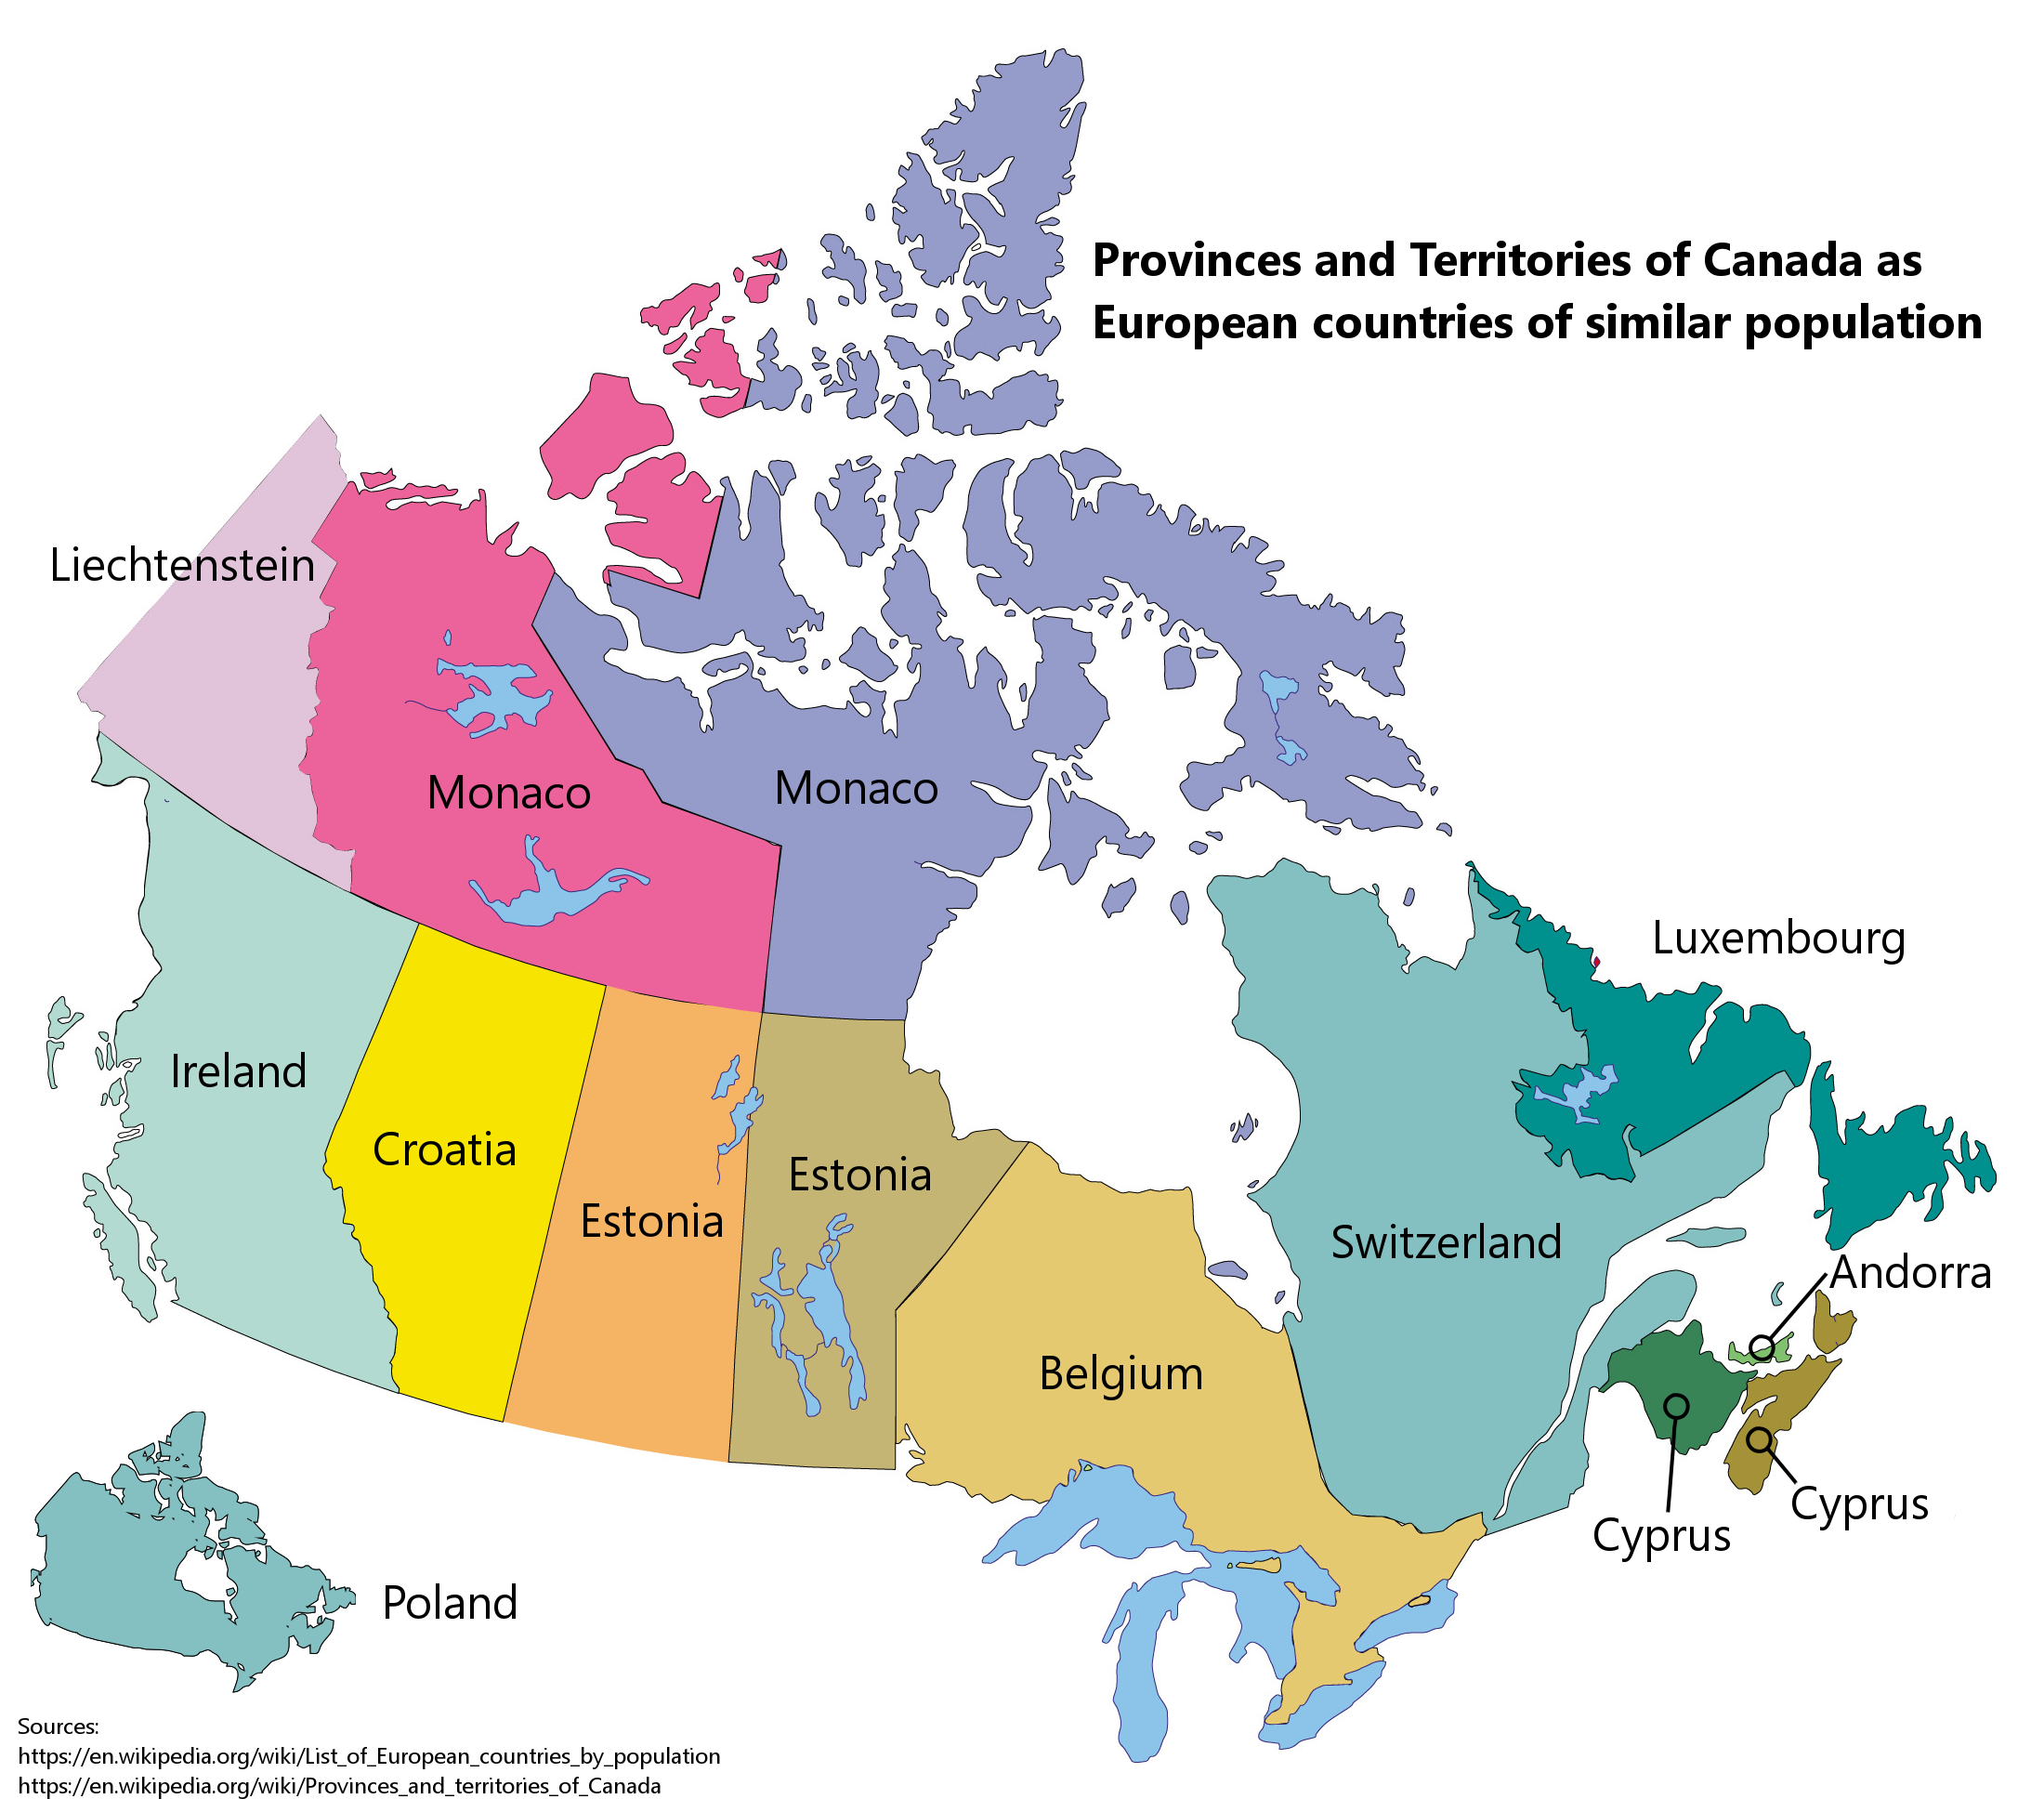 Provinces and Territories of Canada as European countries